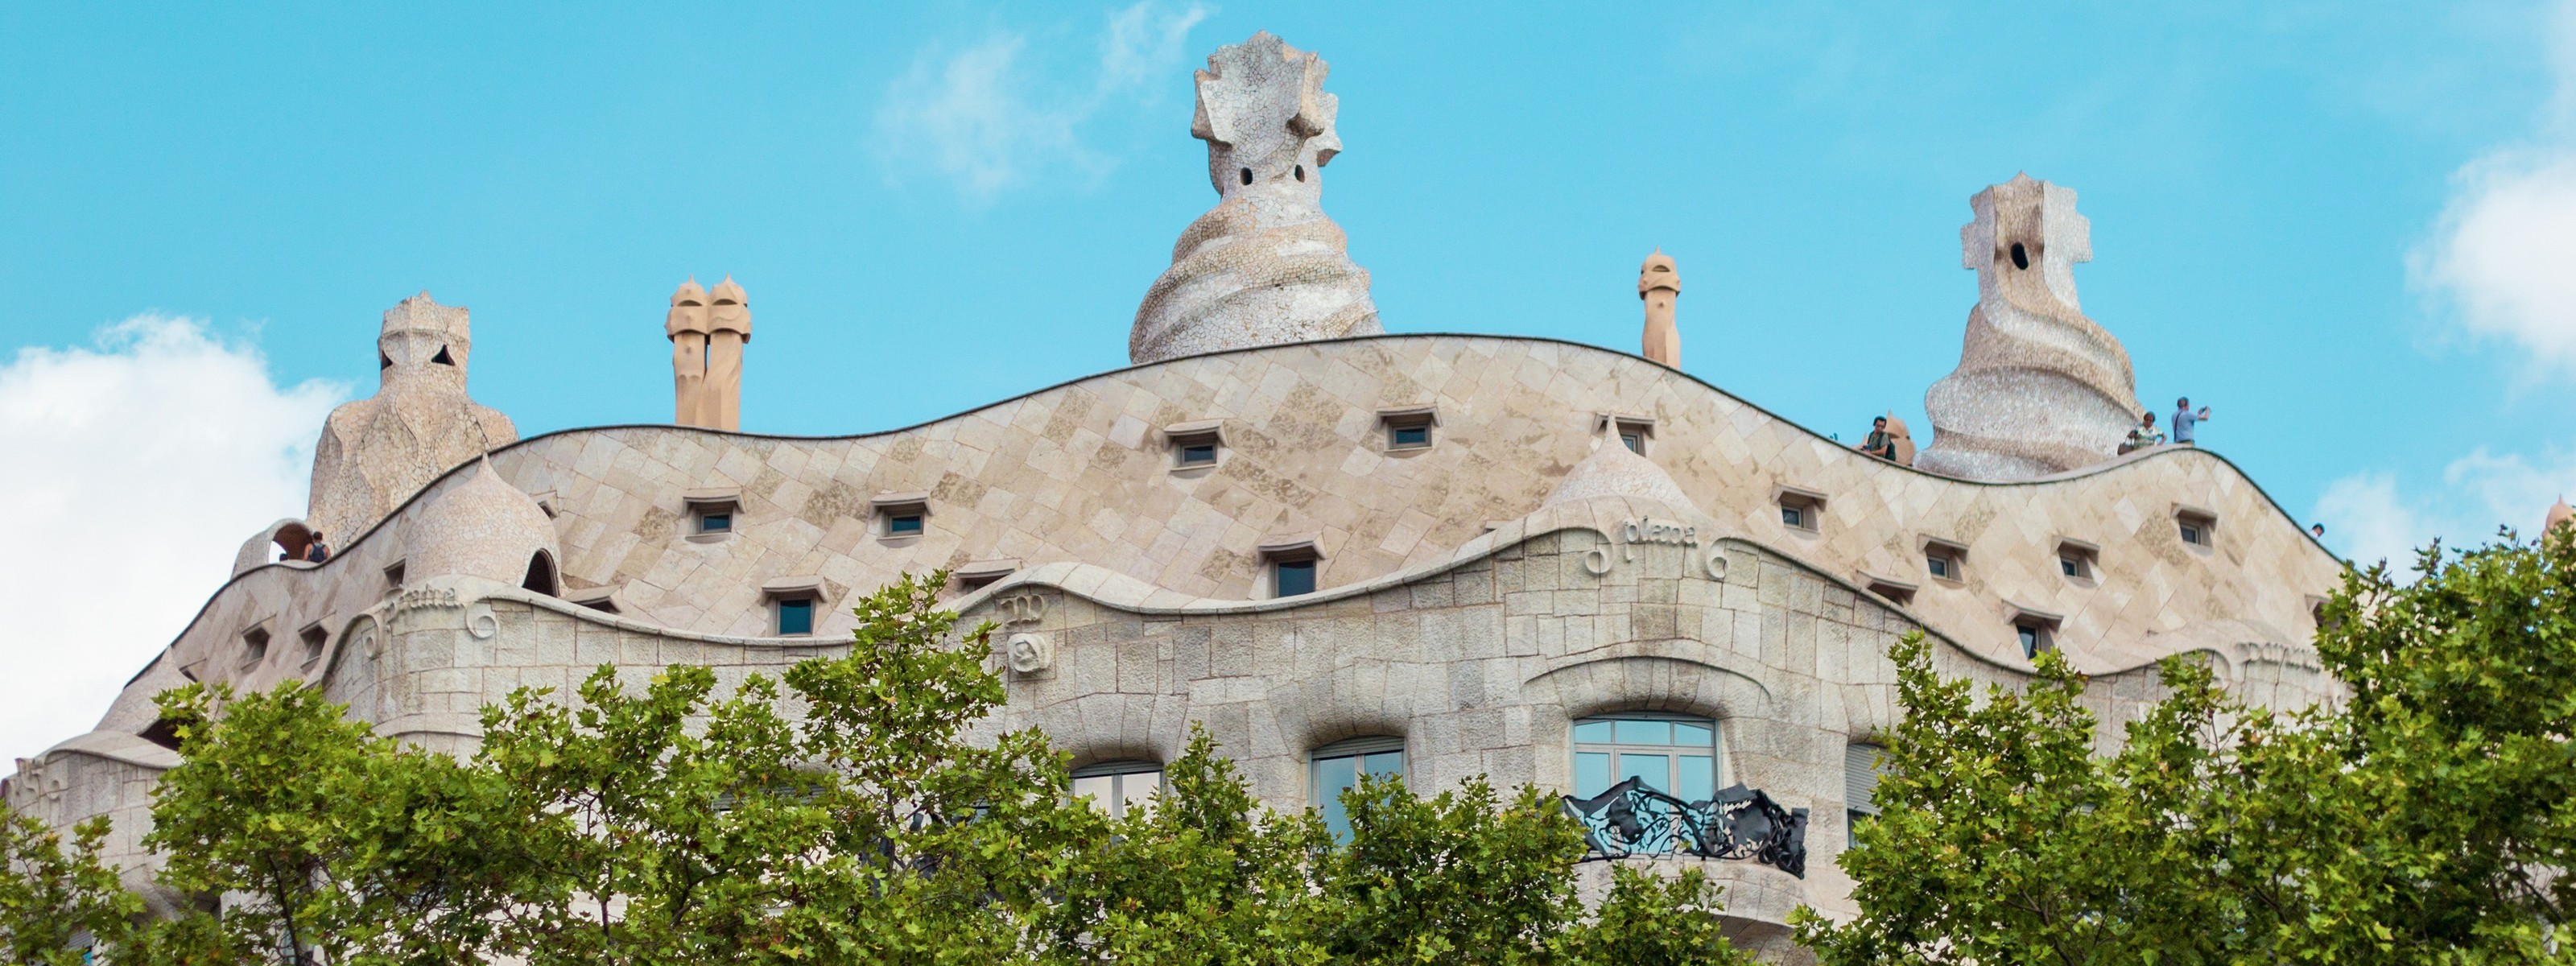 Where To Eat & Drink In Barcelona - Barcelona - The Infatuation